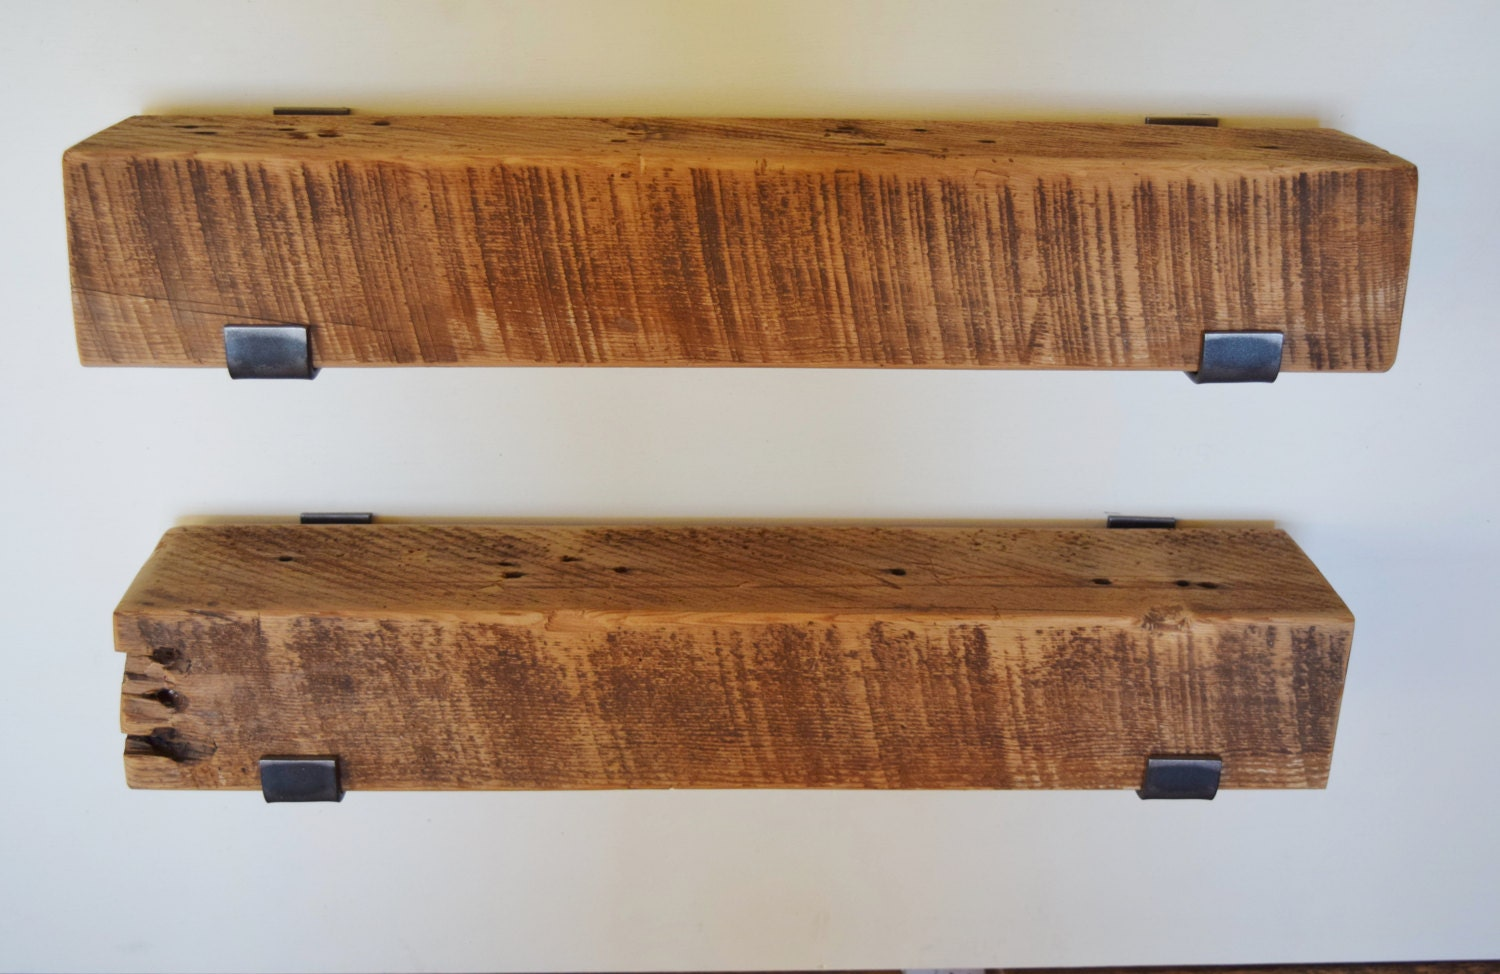 Two Reclaimed Wood Shelves 24 X 5 X 4